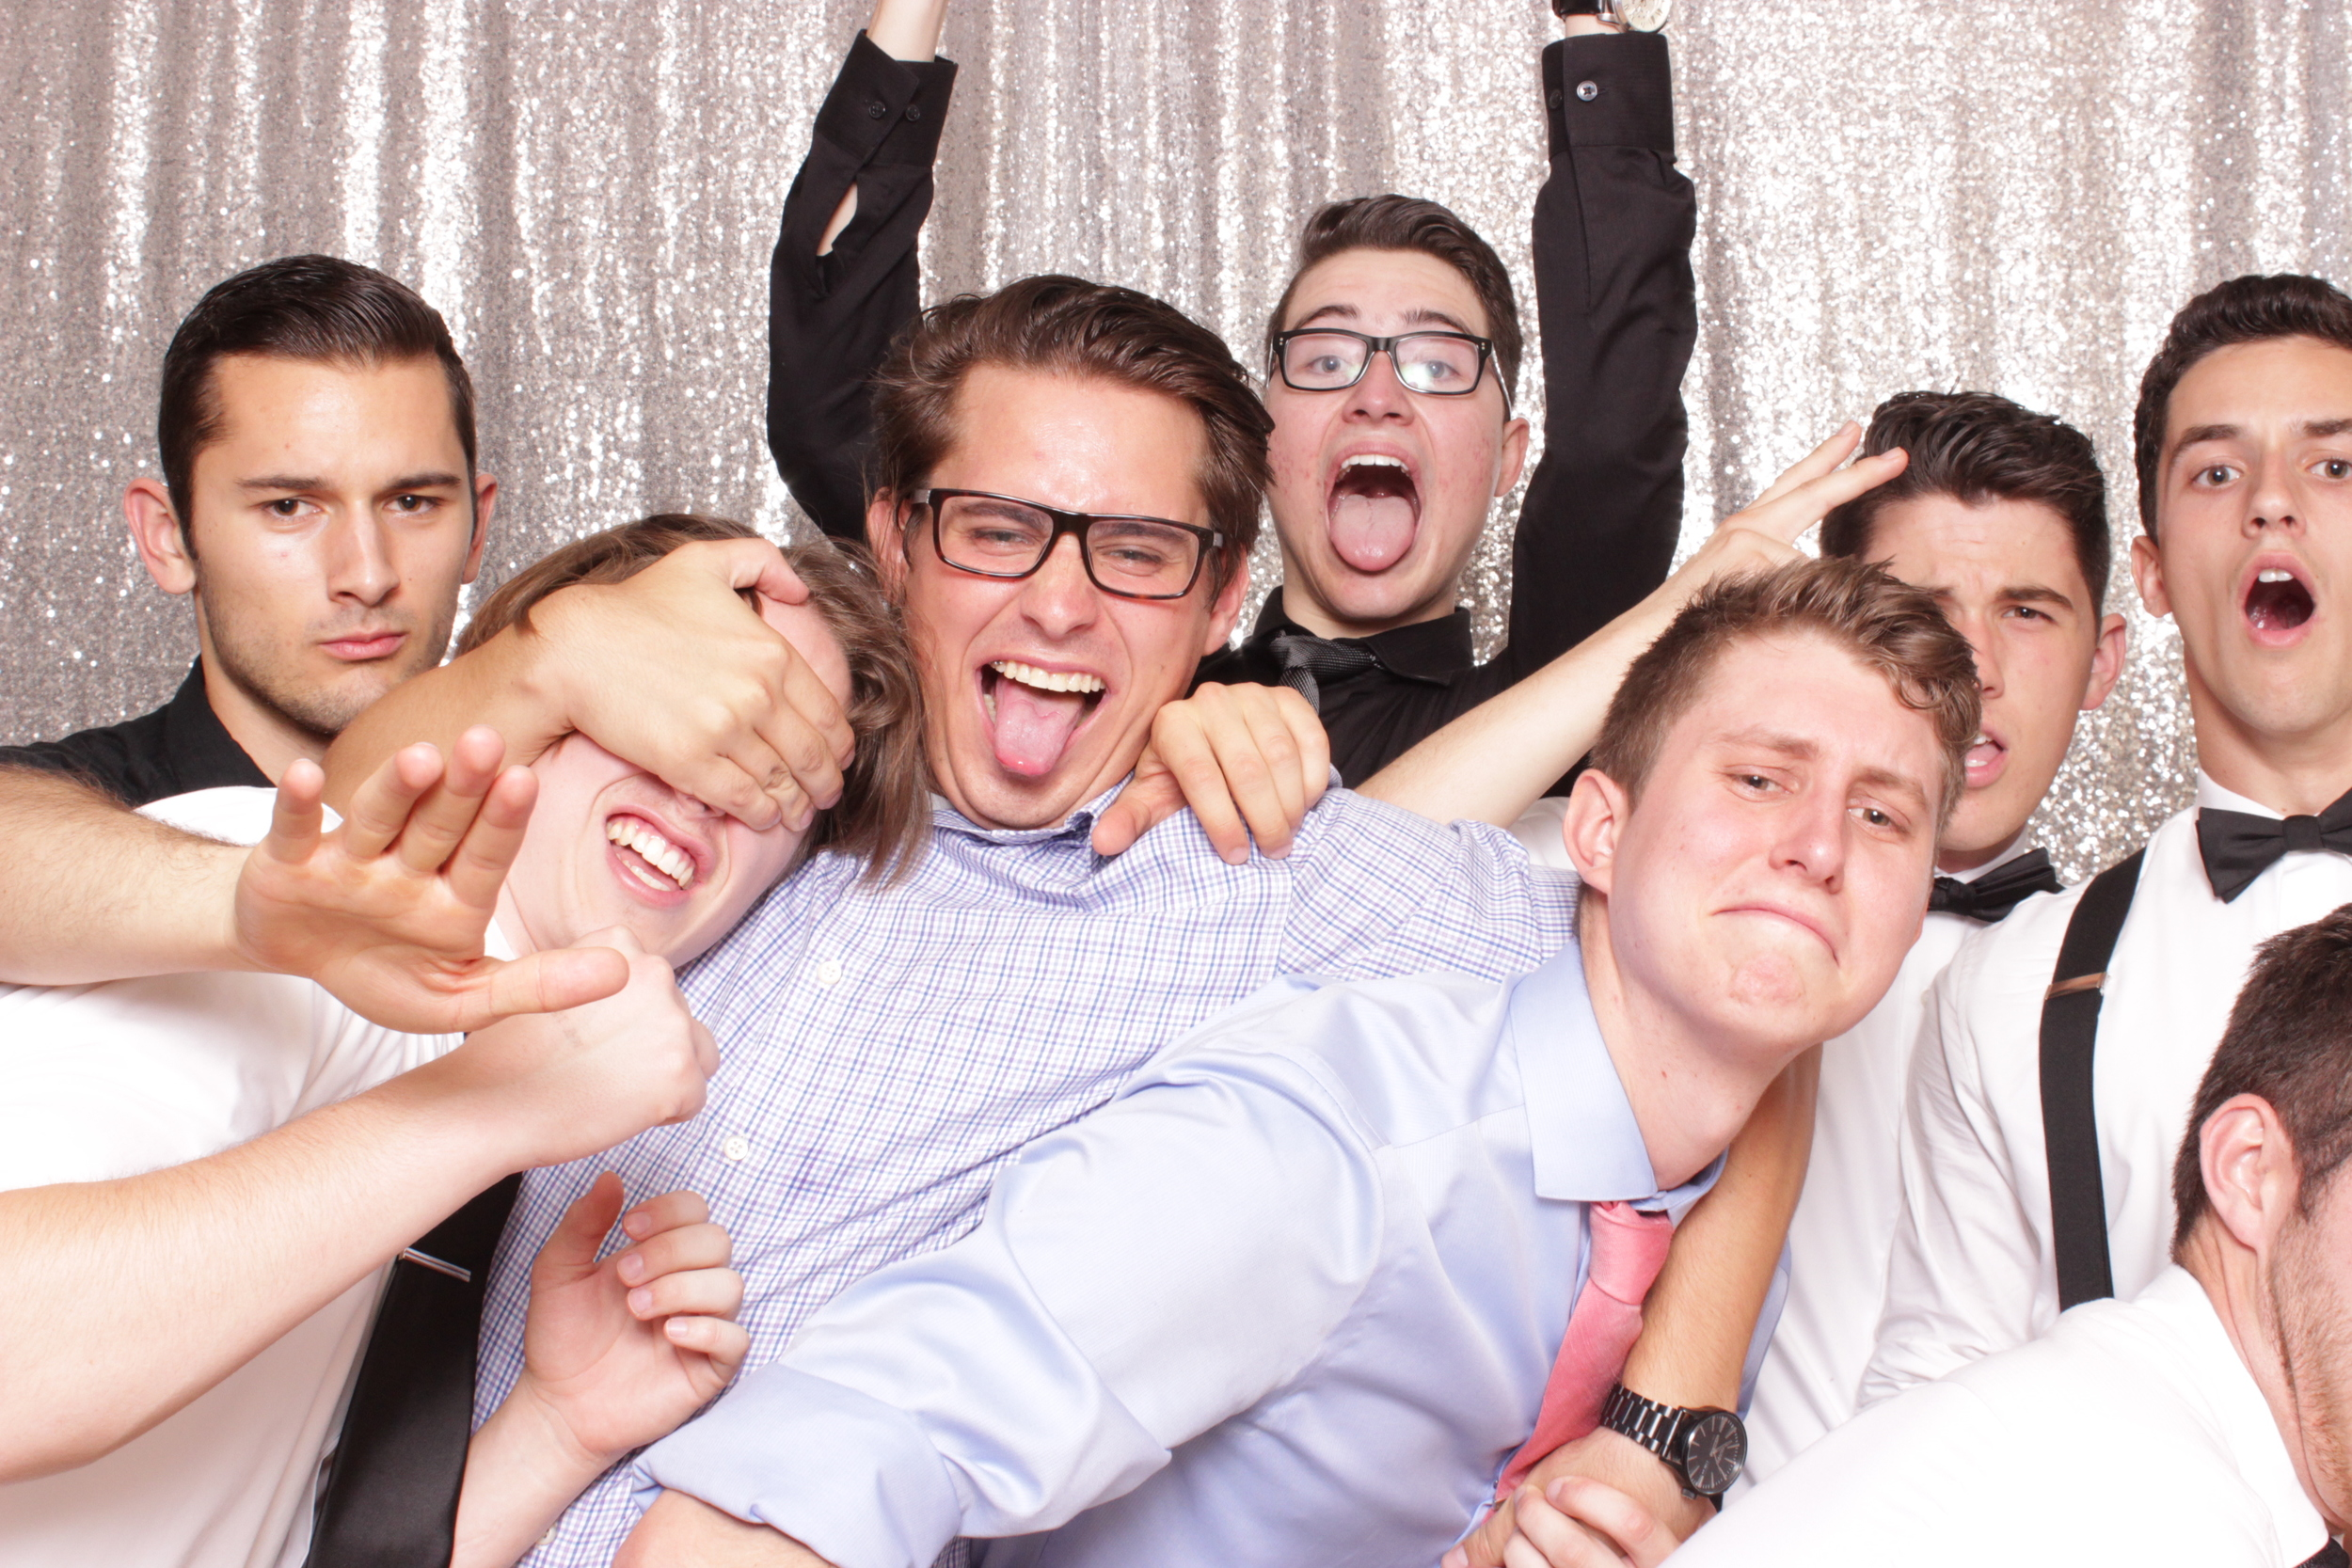 chico-photo-booth-rental-chico-state-sorority-formal